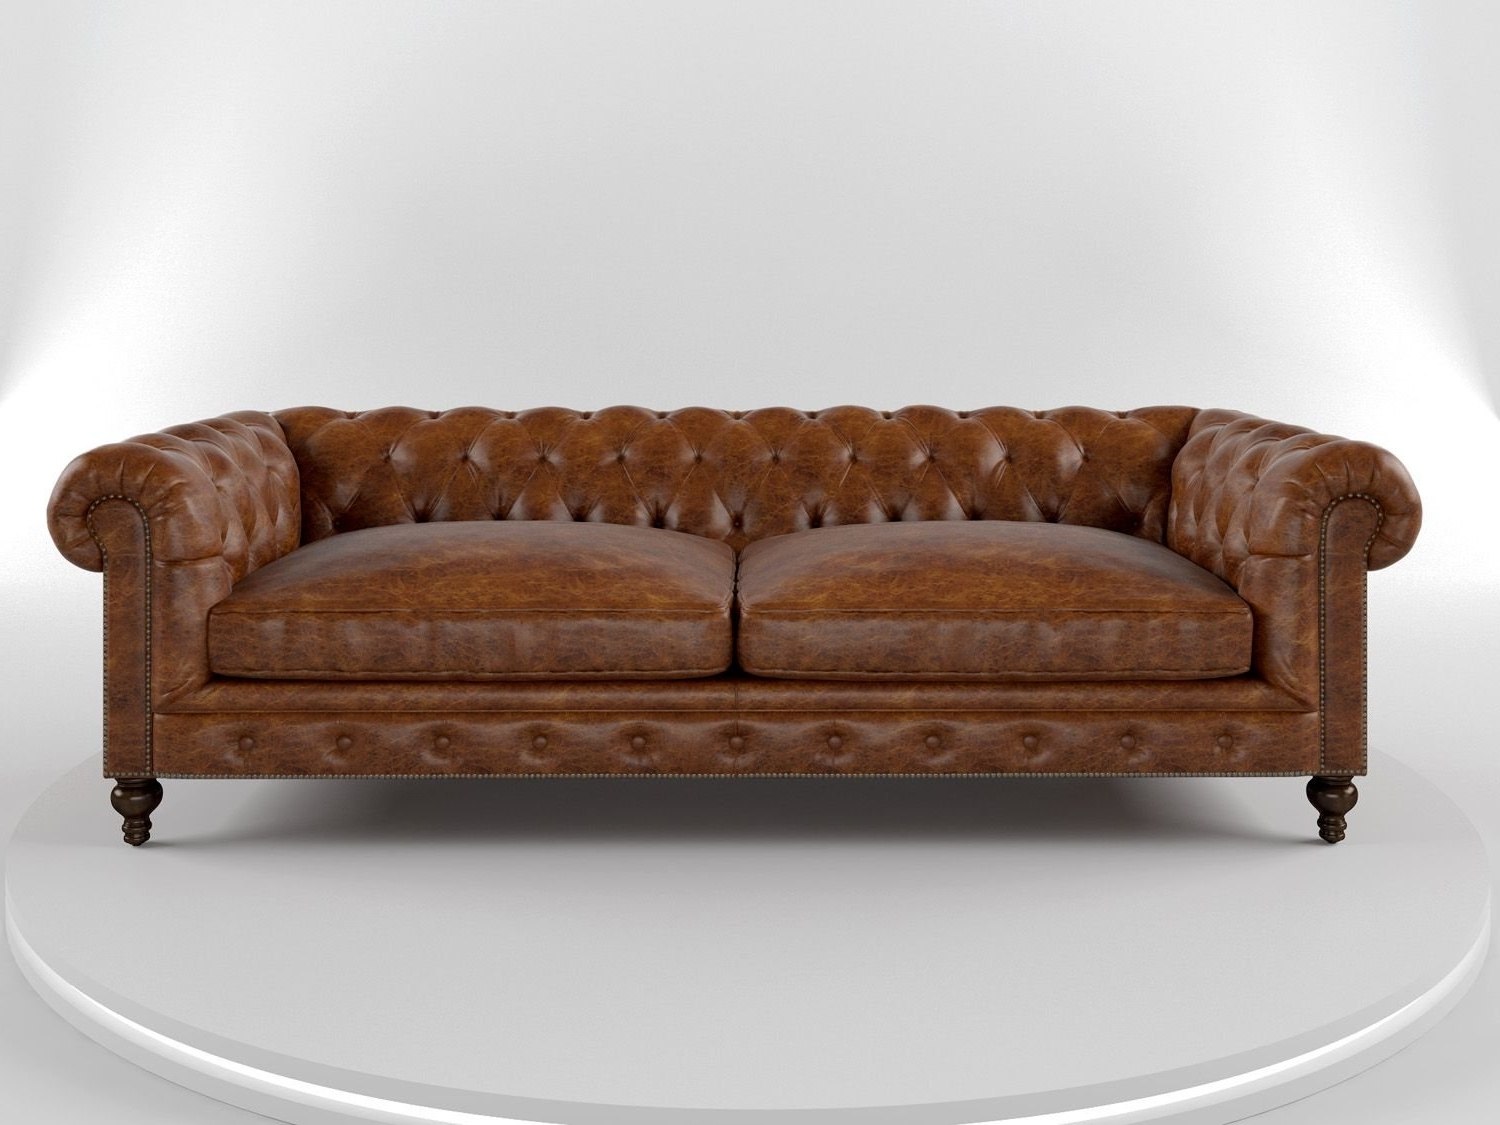 Leather Chesterfield Sofas In Most Popular Cococo Custom Chesterfield Leather Tufted Sofas – Made In Usa (View 8 of 20)